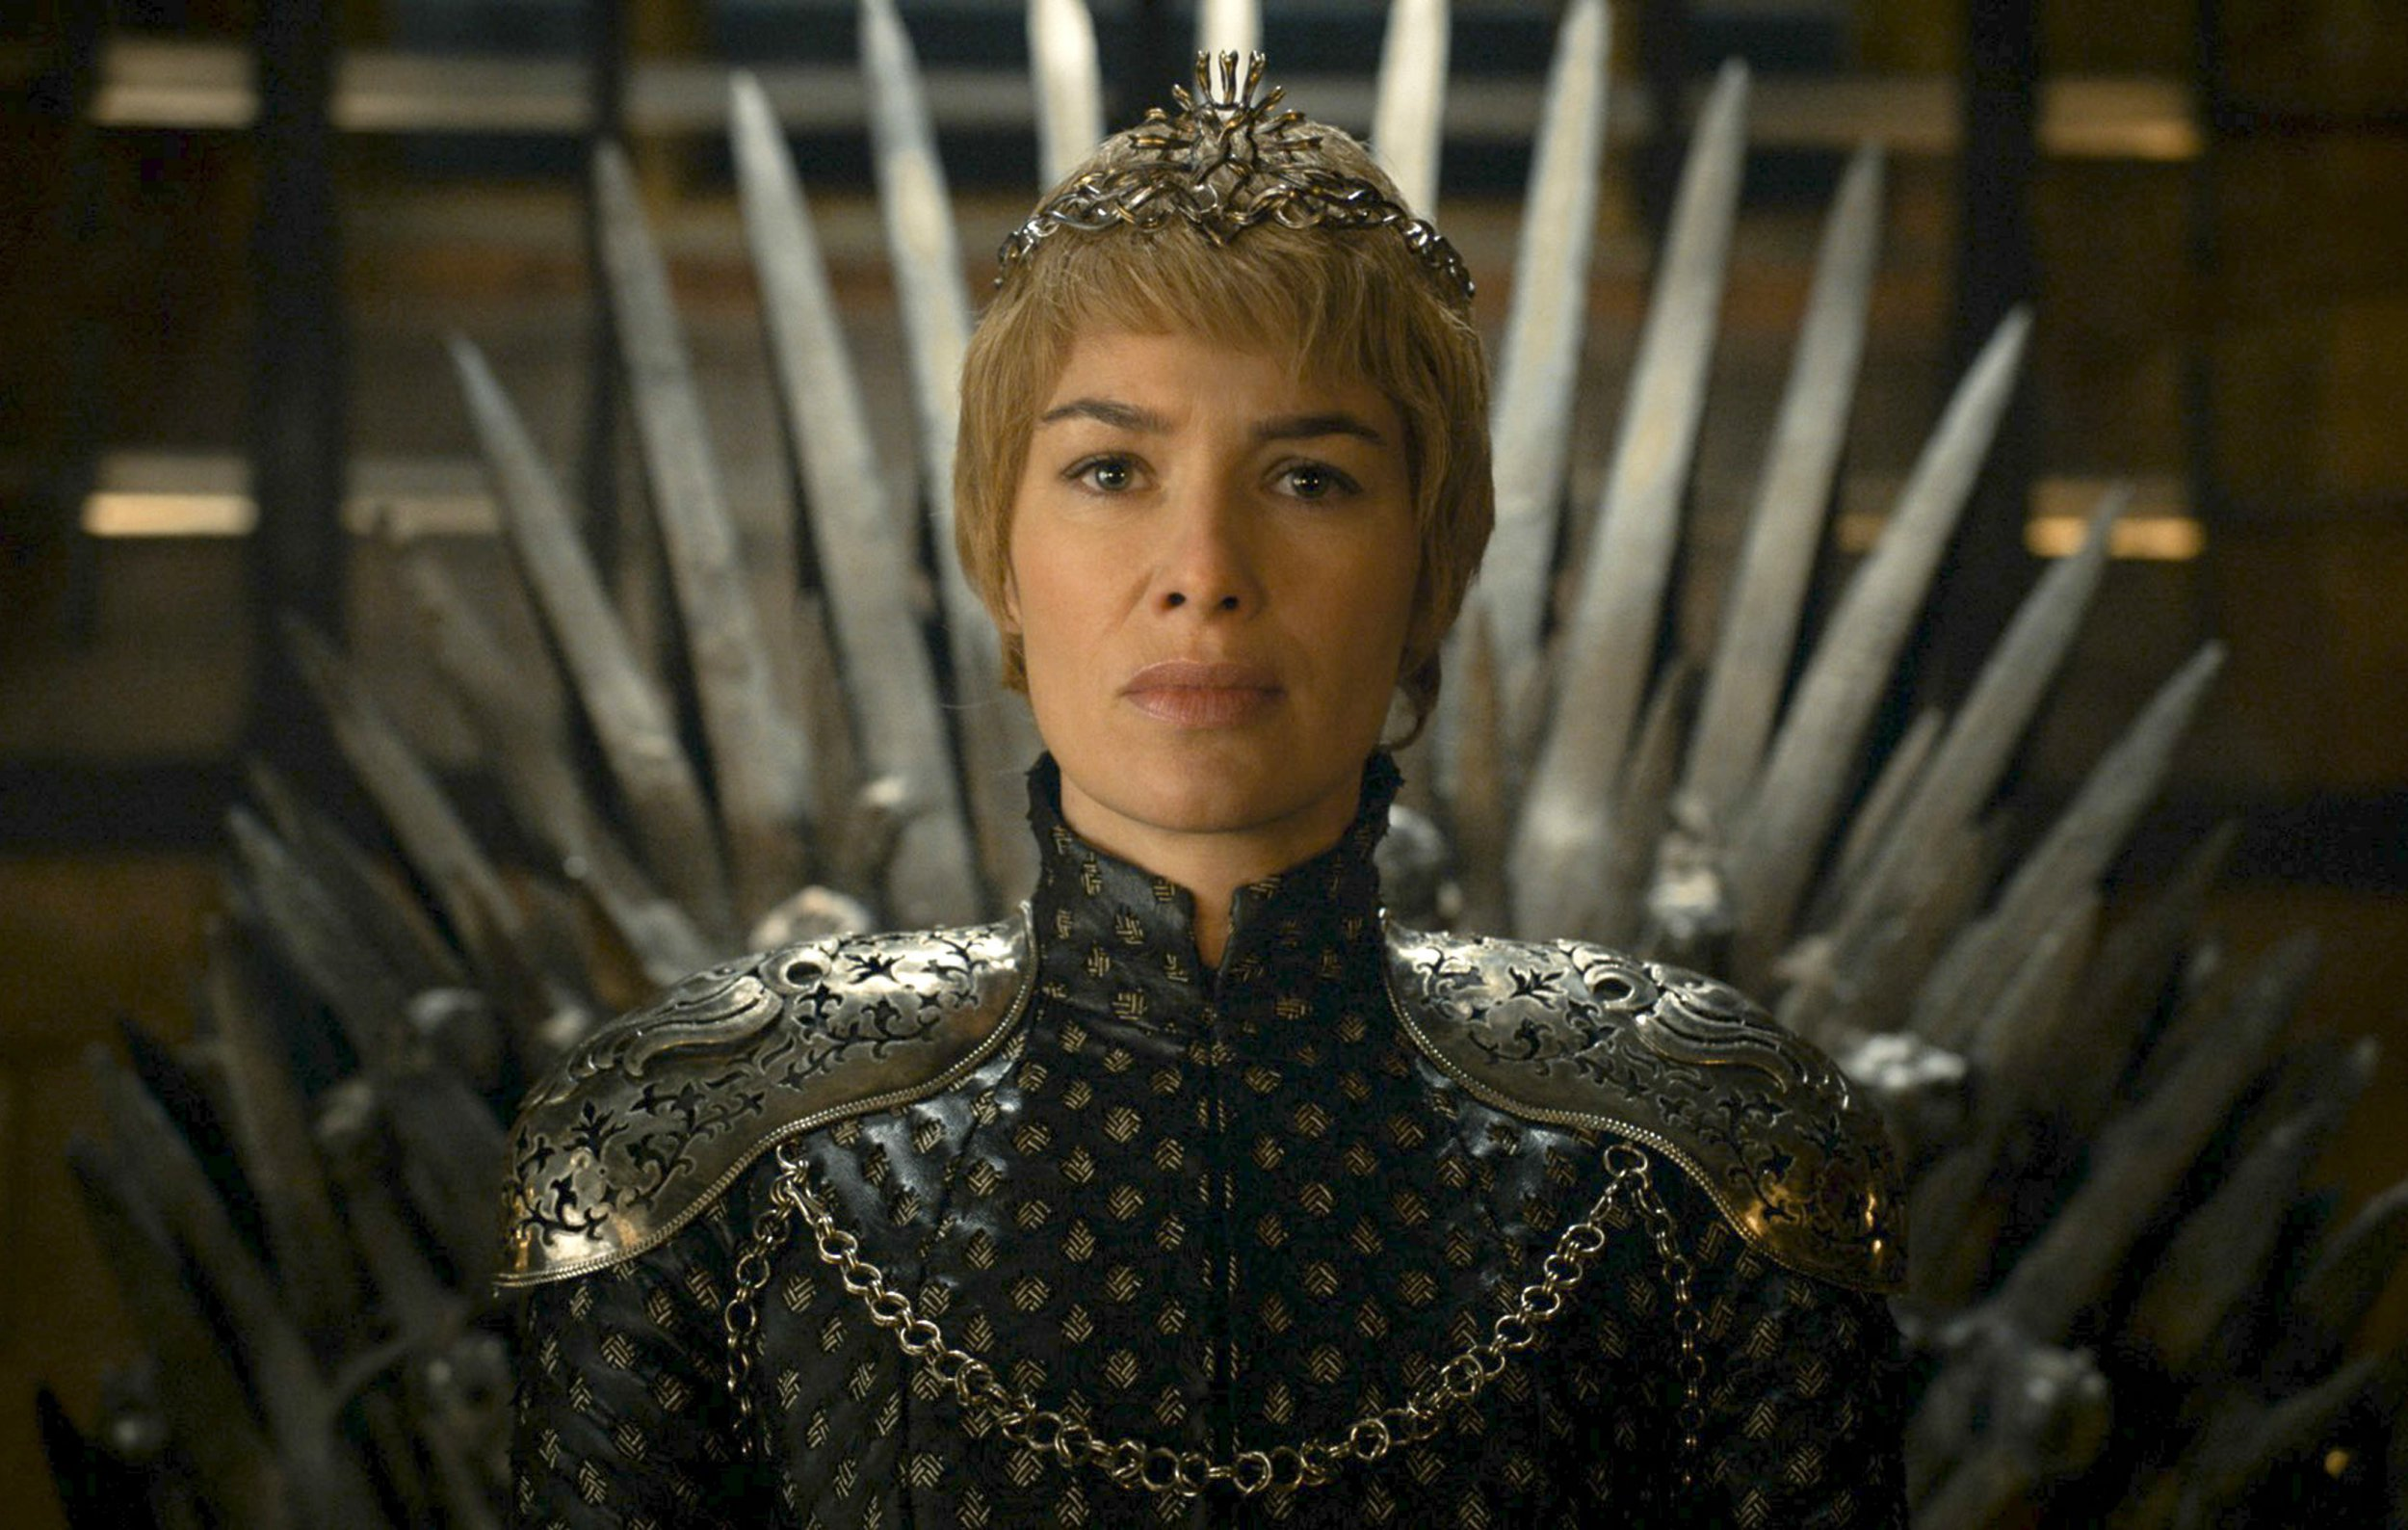 What were Cersei Lannister's prophecies in Game of Thrones?